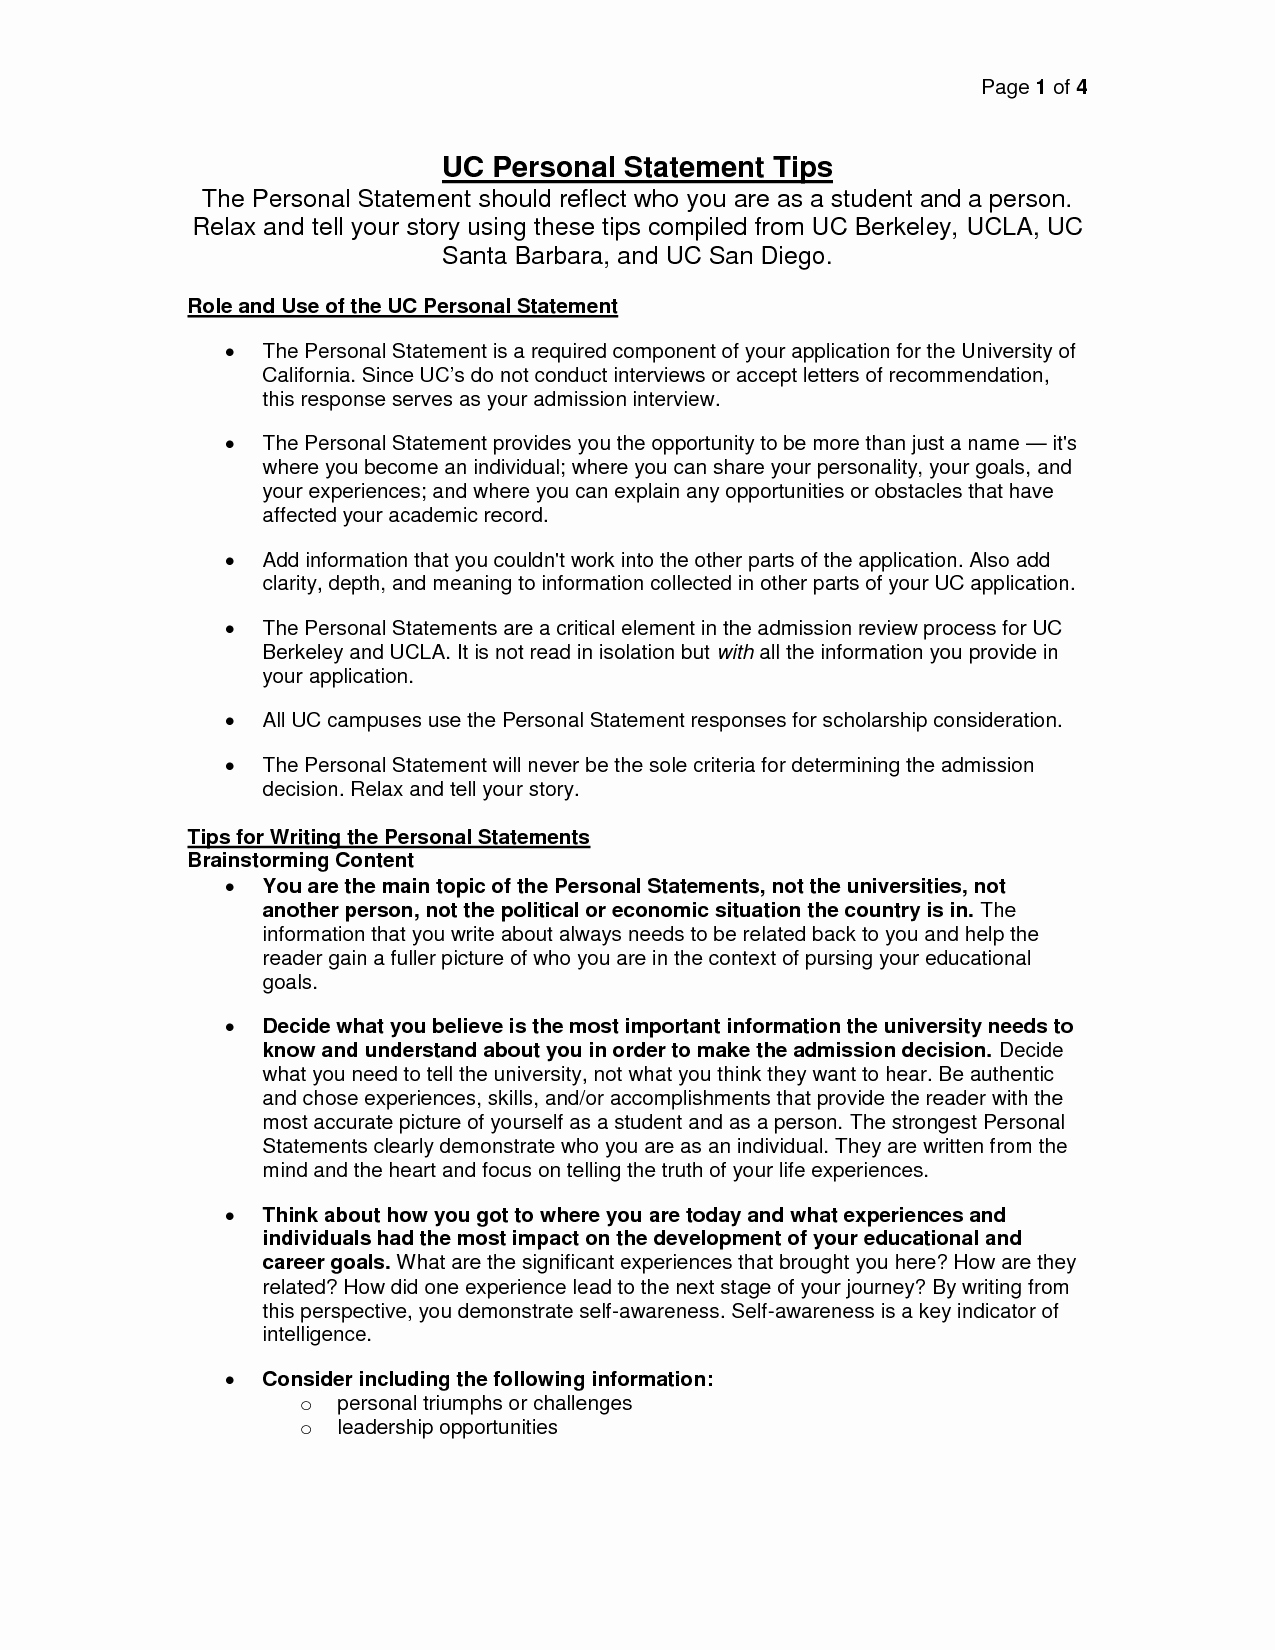 Uc Berkeley Letter Of Recommendation New Uc Berkeley Personal Statement Best Template Collection